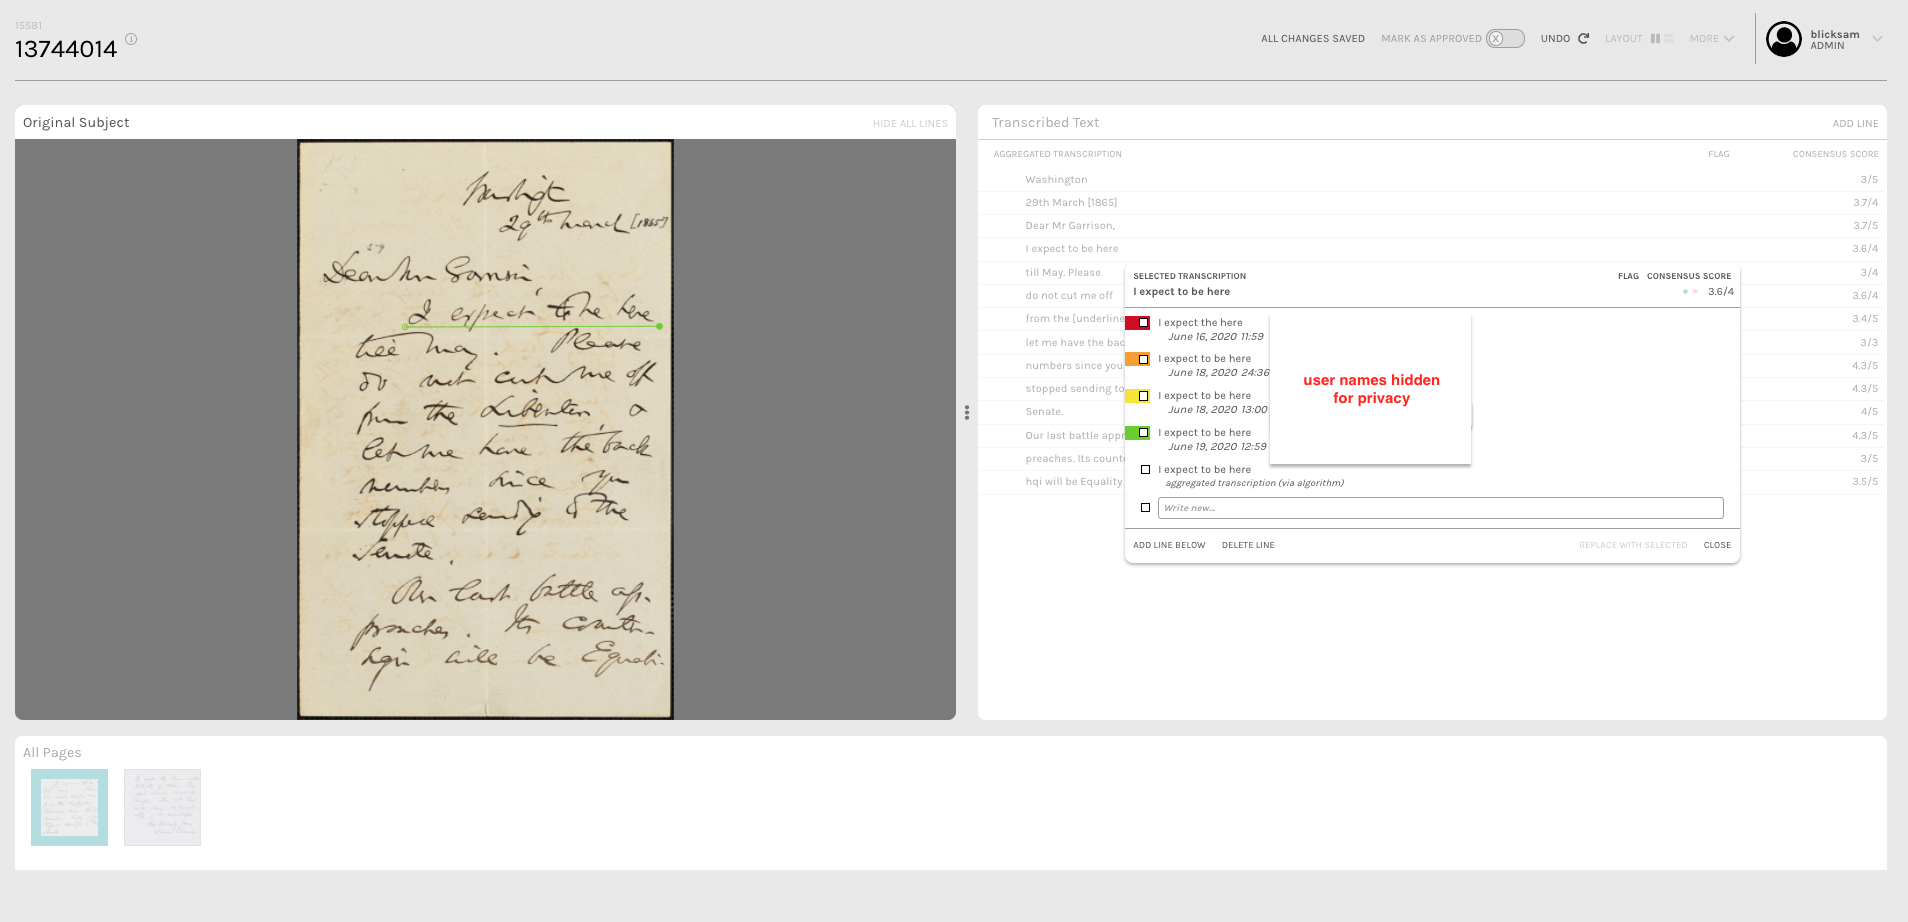 This image builds on the image above. On the left is a handwritten document with a green line underneath a specific line of text. On the right, in the background, is a line by line transcription of the document. However, one line is selected (the one with the green underline) and in the foreground on the right, there is a popup with a list of different transcriptions of that line as well as the dates they were submitted.